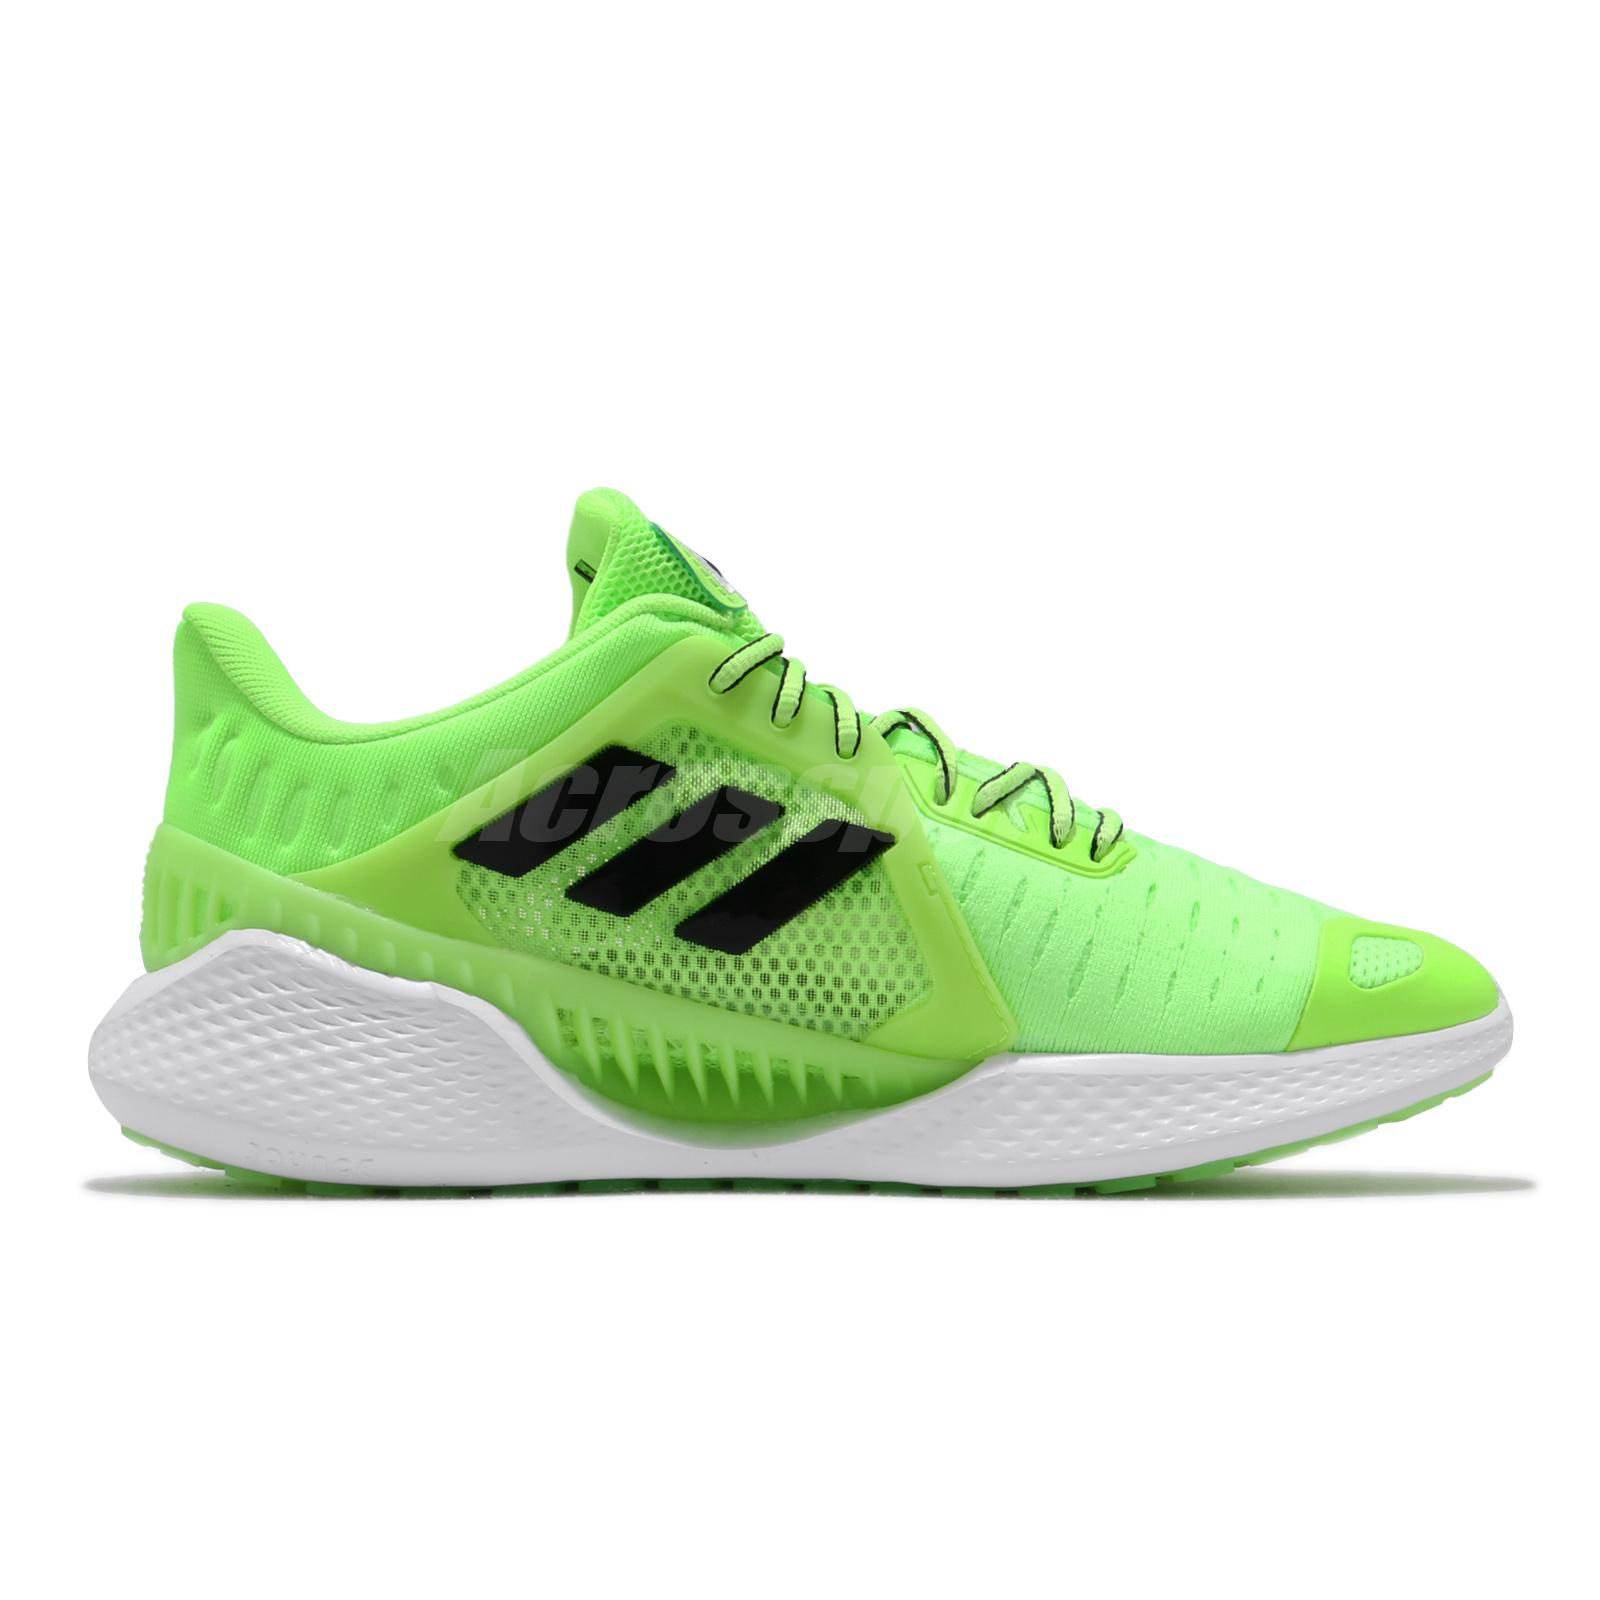 vendedor munición comentarista  adidas ClimaCool Vent Summer.Rdy Green Black White Men Running Shoes EE3914  | eBay